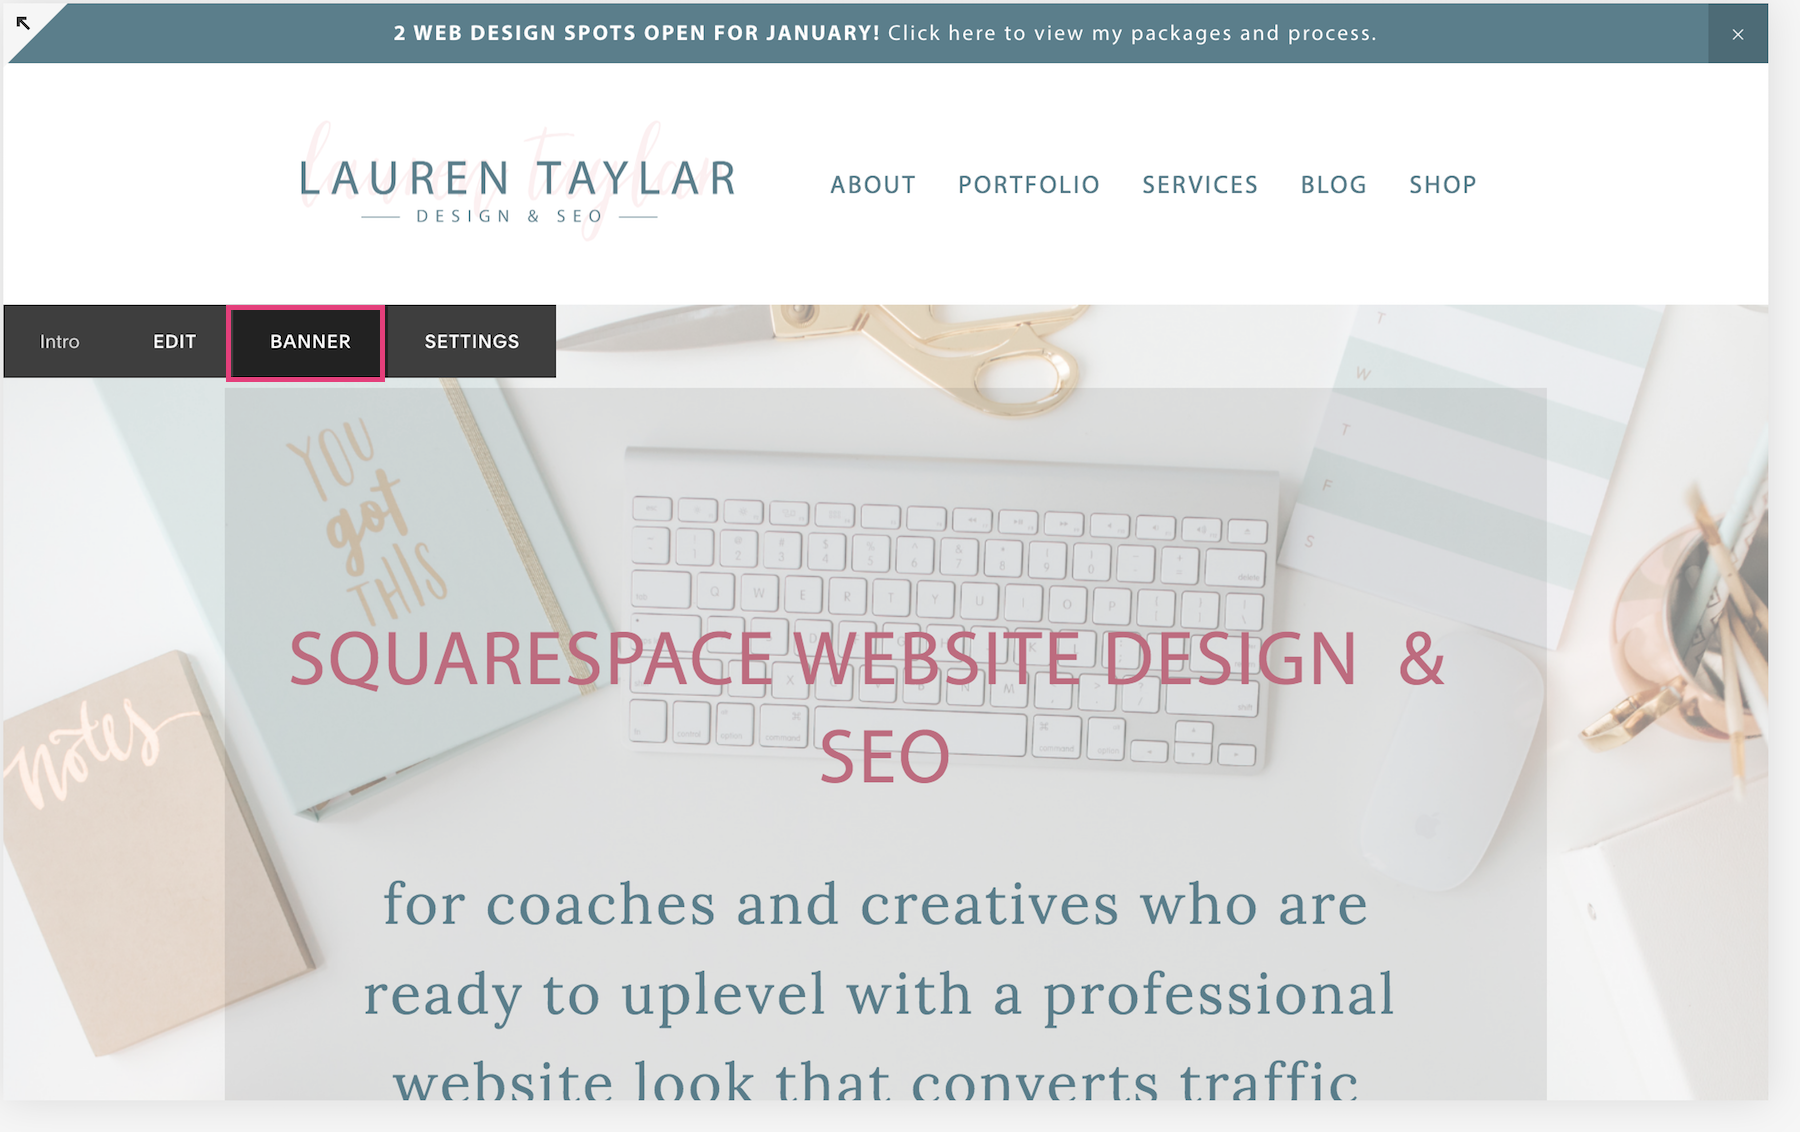 How To Format Upload A Squarespace Banner Image Lauren Taylar